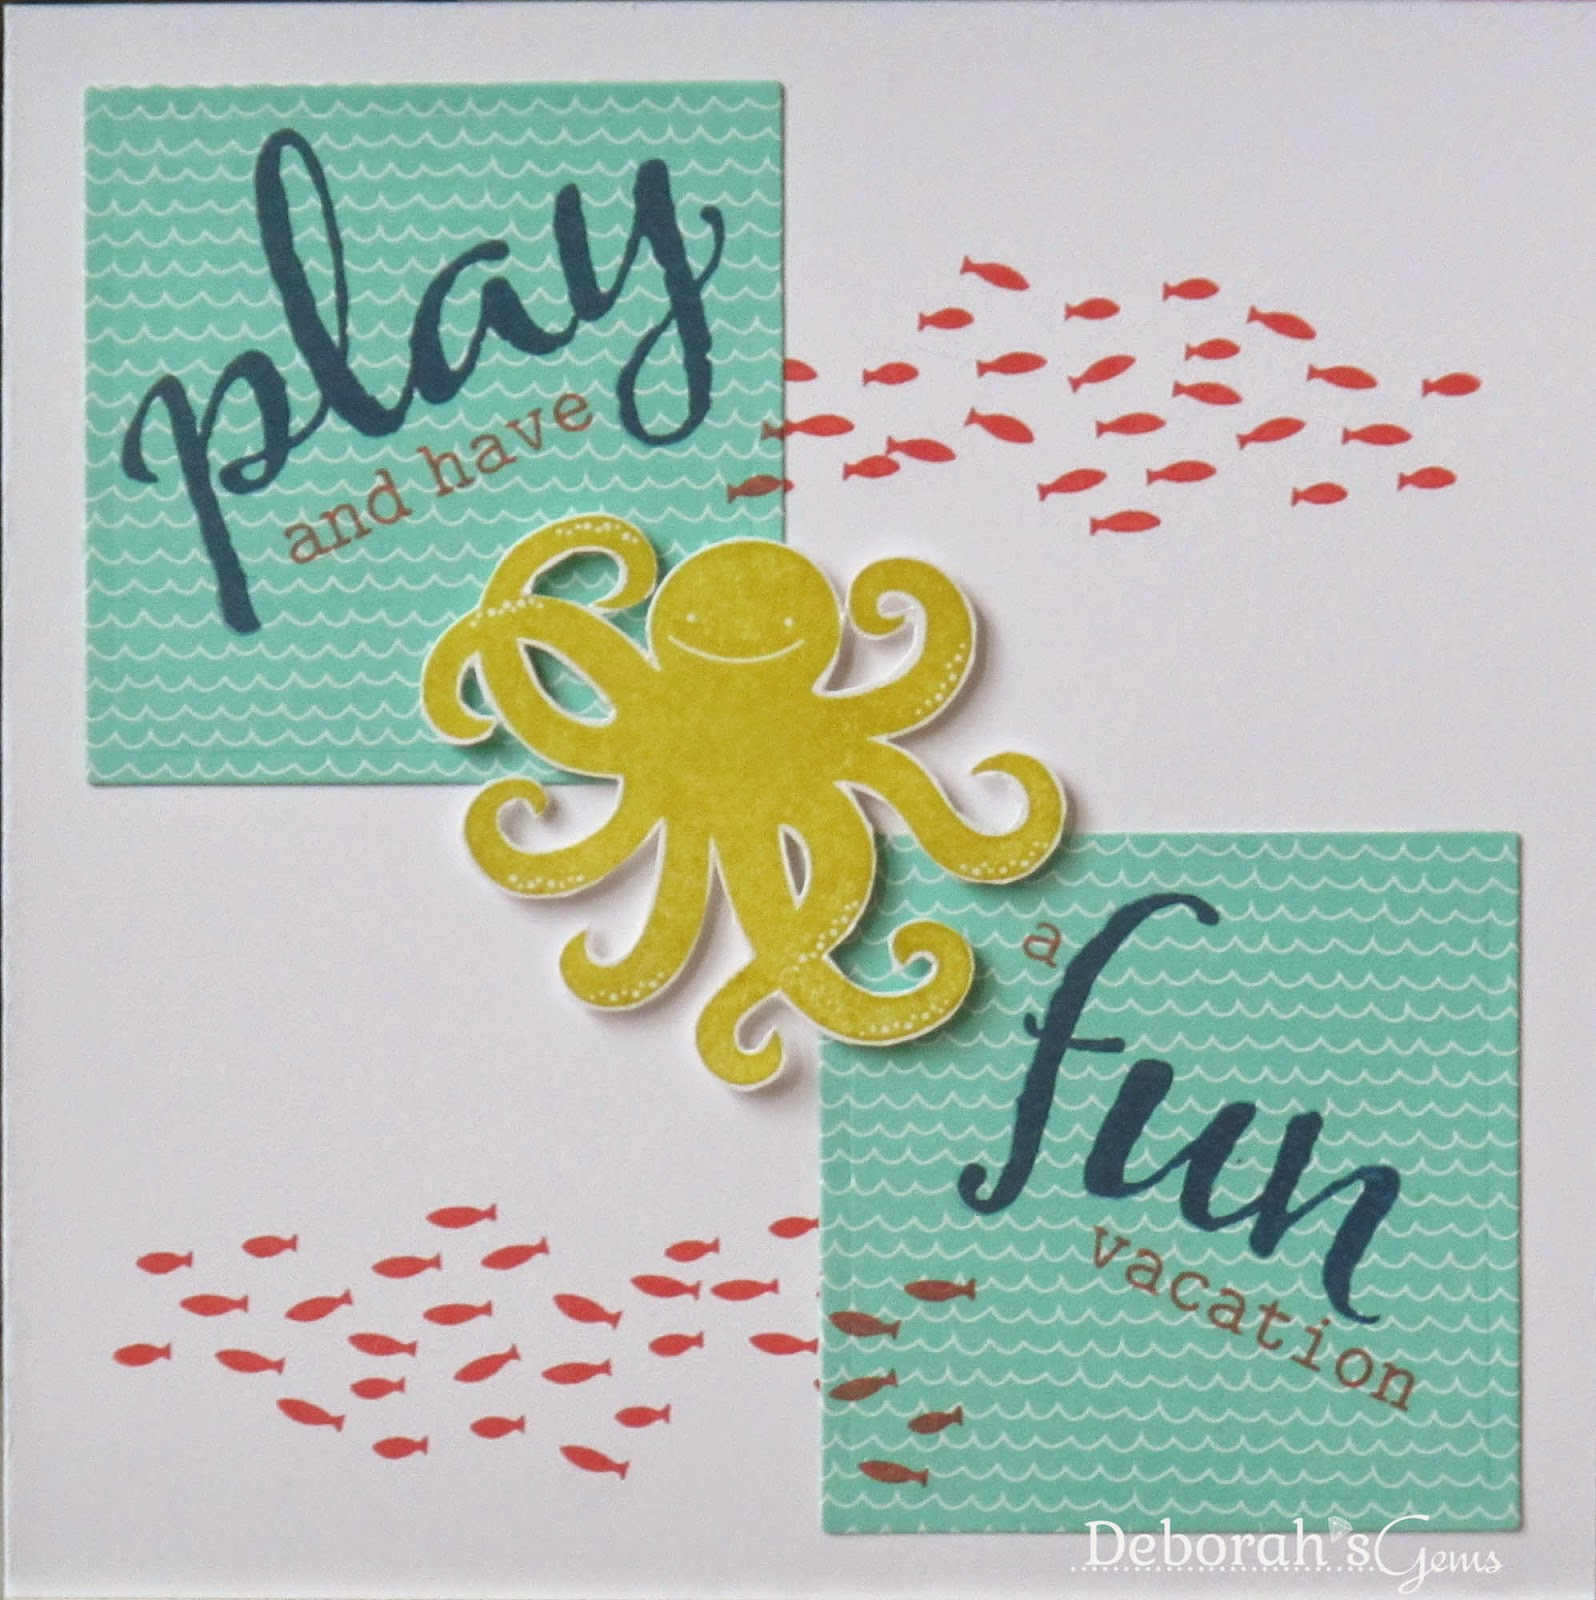 Play & Fun - photo by Deborah Frings - Deborah's Gems